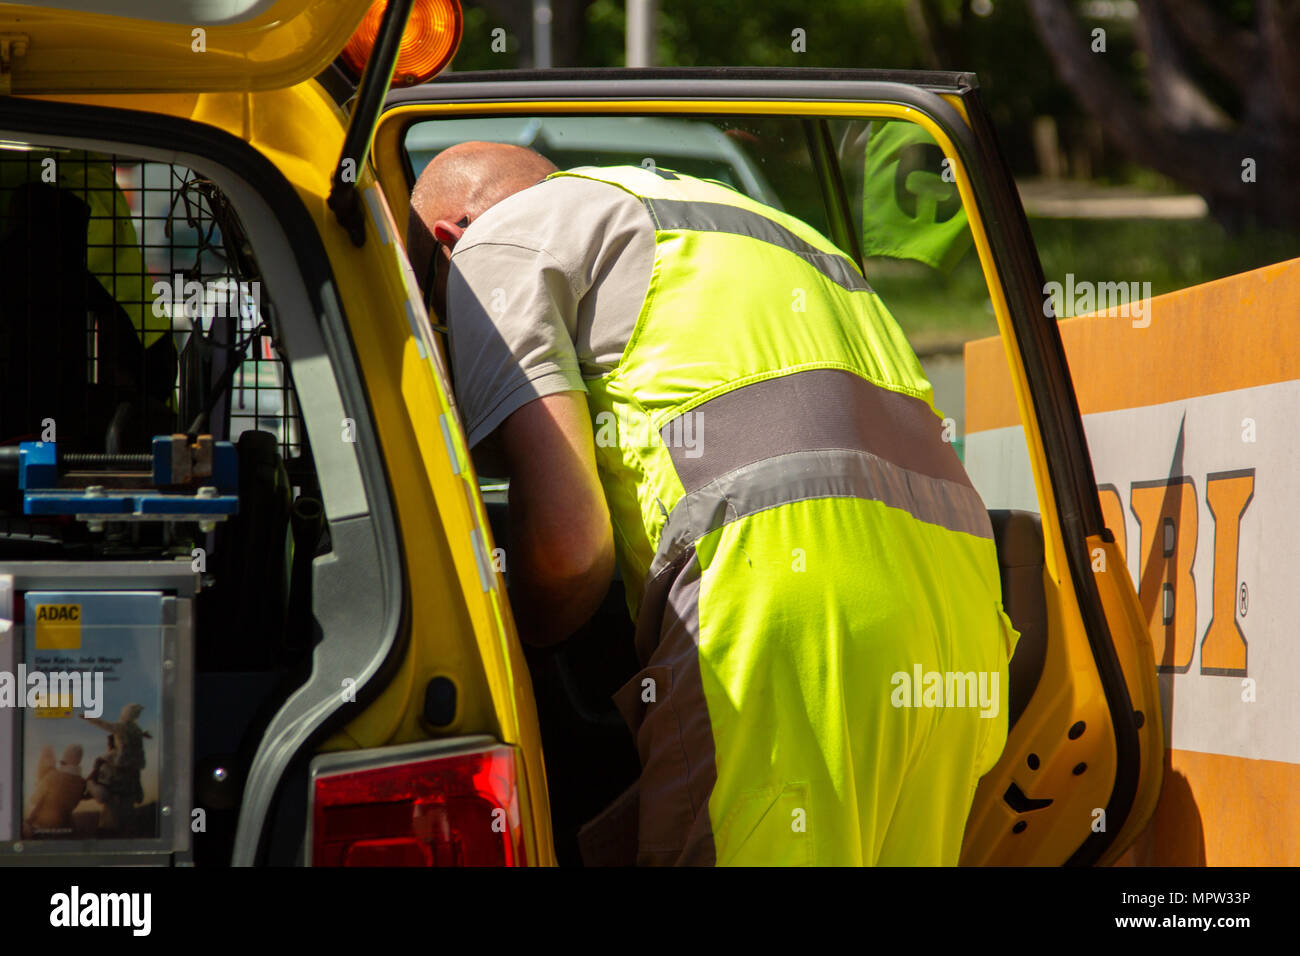 HANNOVER / GERMANY - MAY 21, 2018: Service man from ADAC, german automobile club stands at the trunk of his service car. - Stock Image